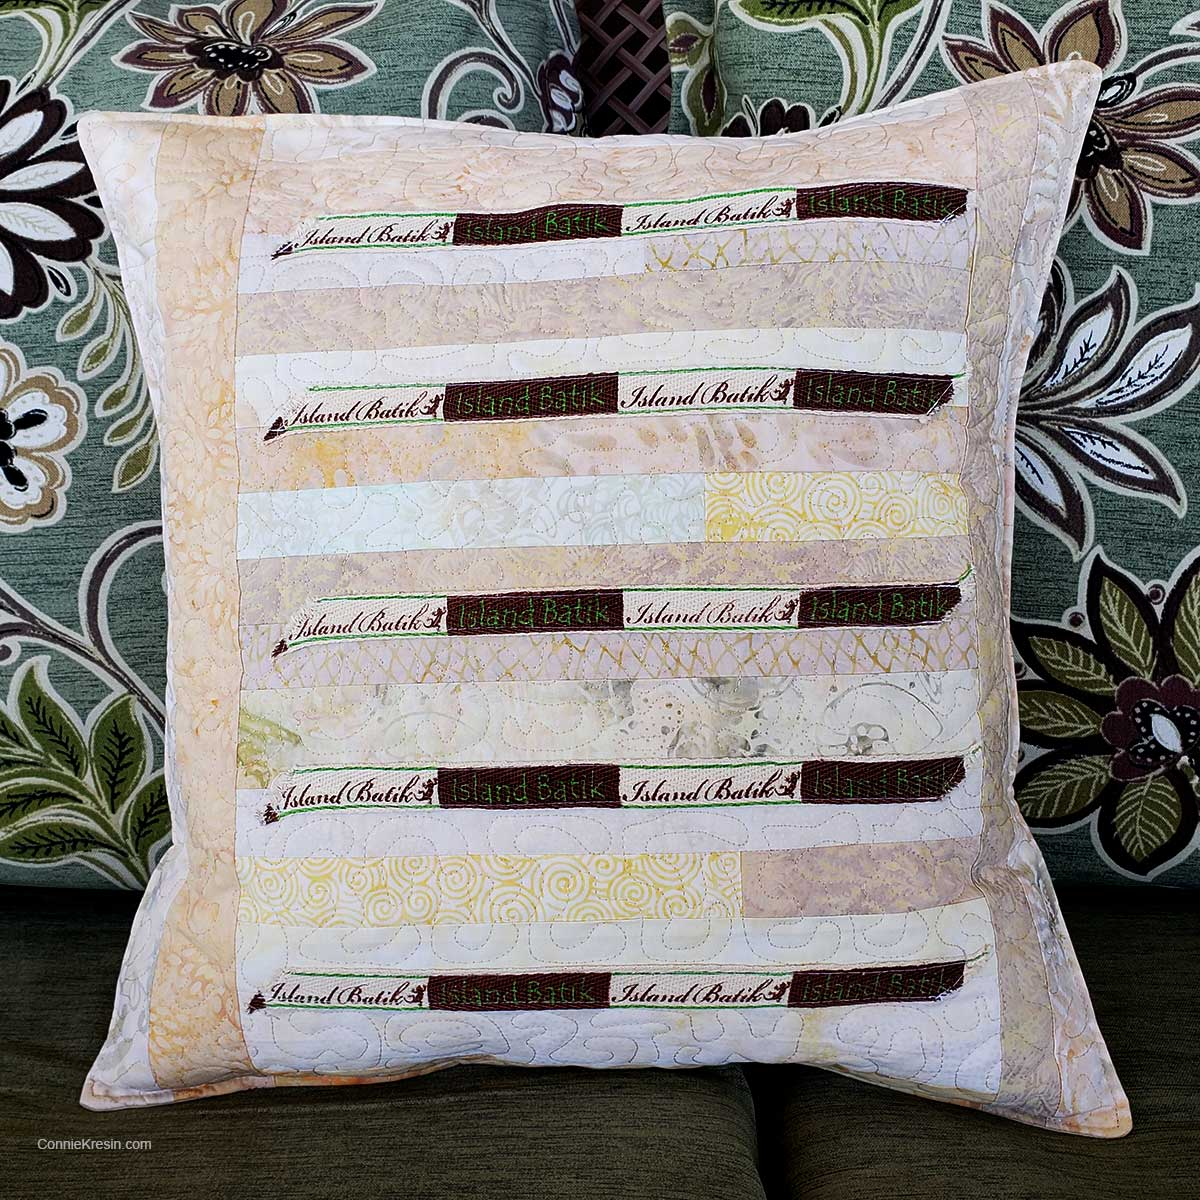 Quilted pillow made with labels from Island Batik fabric easy tutorial